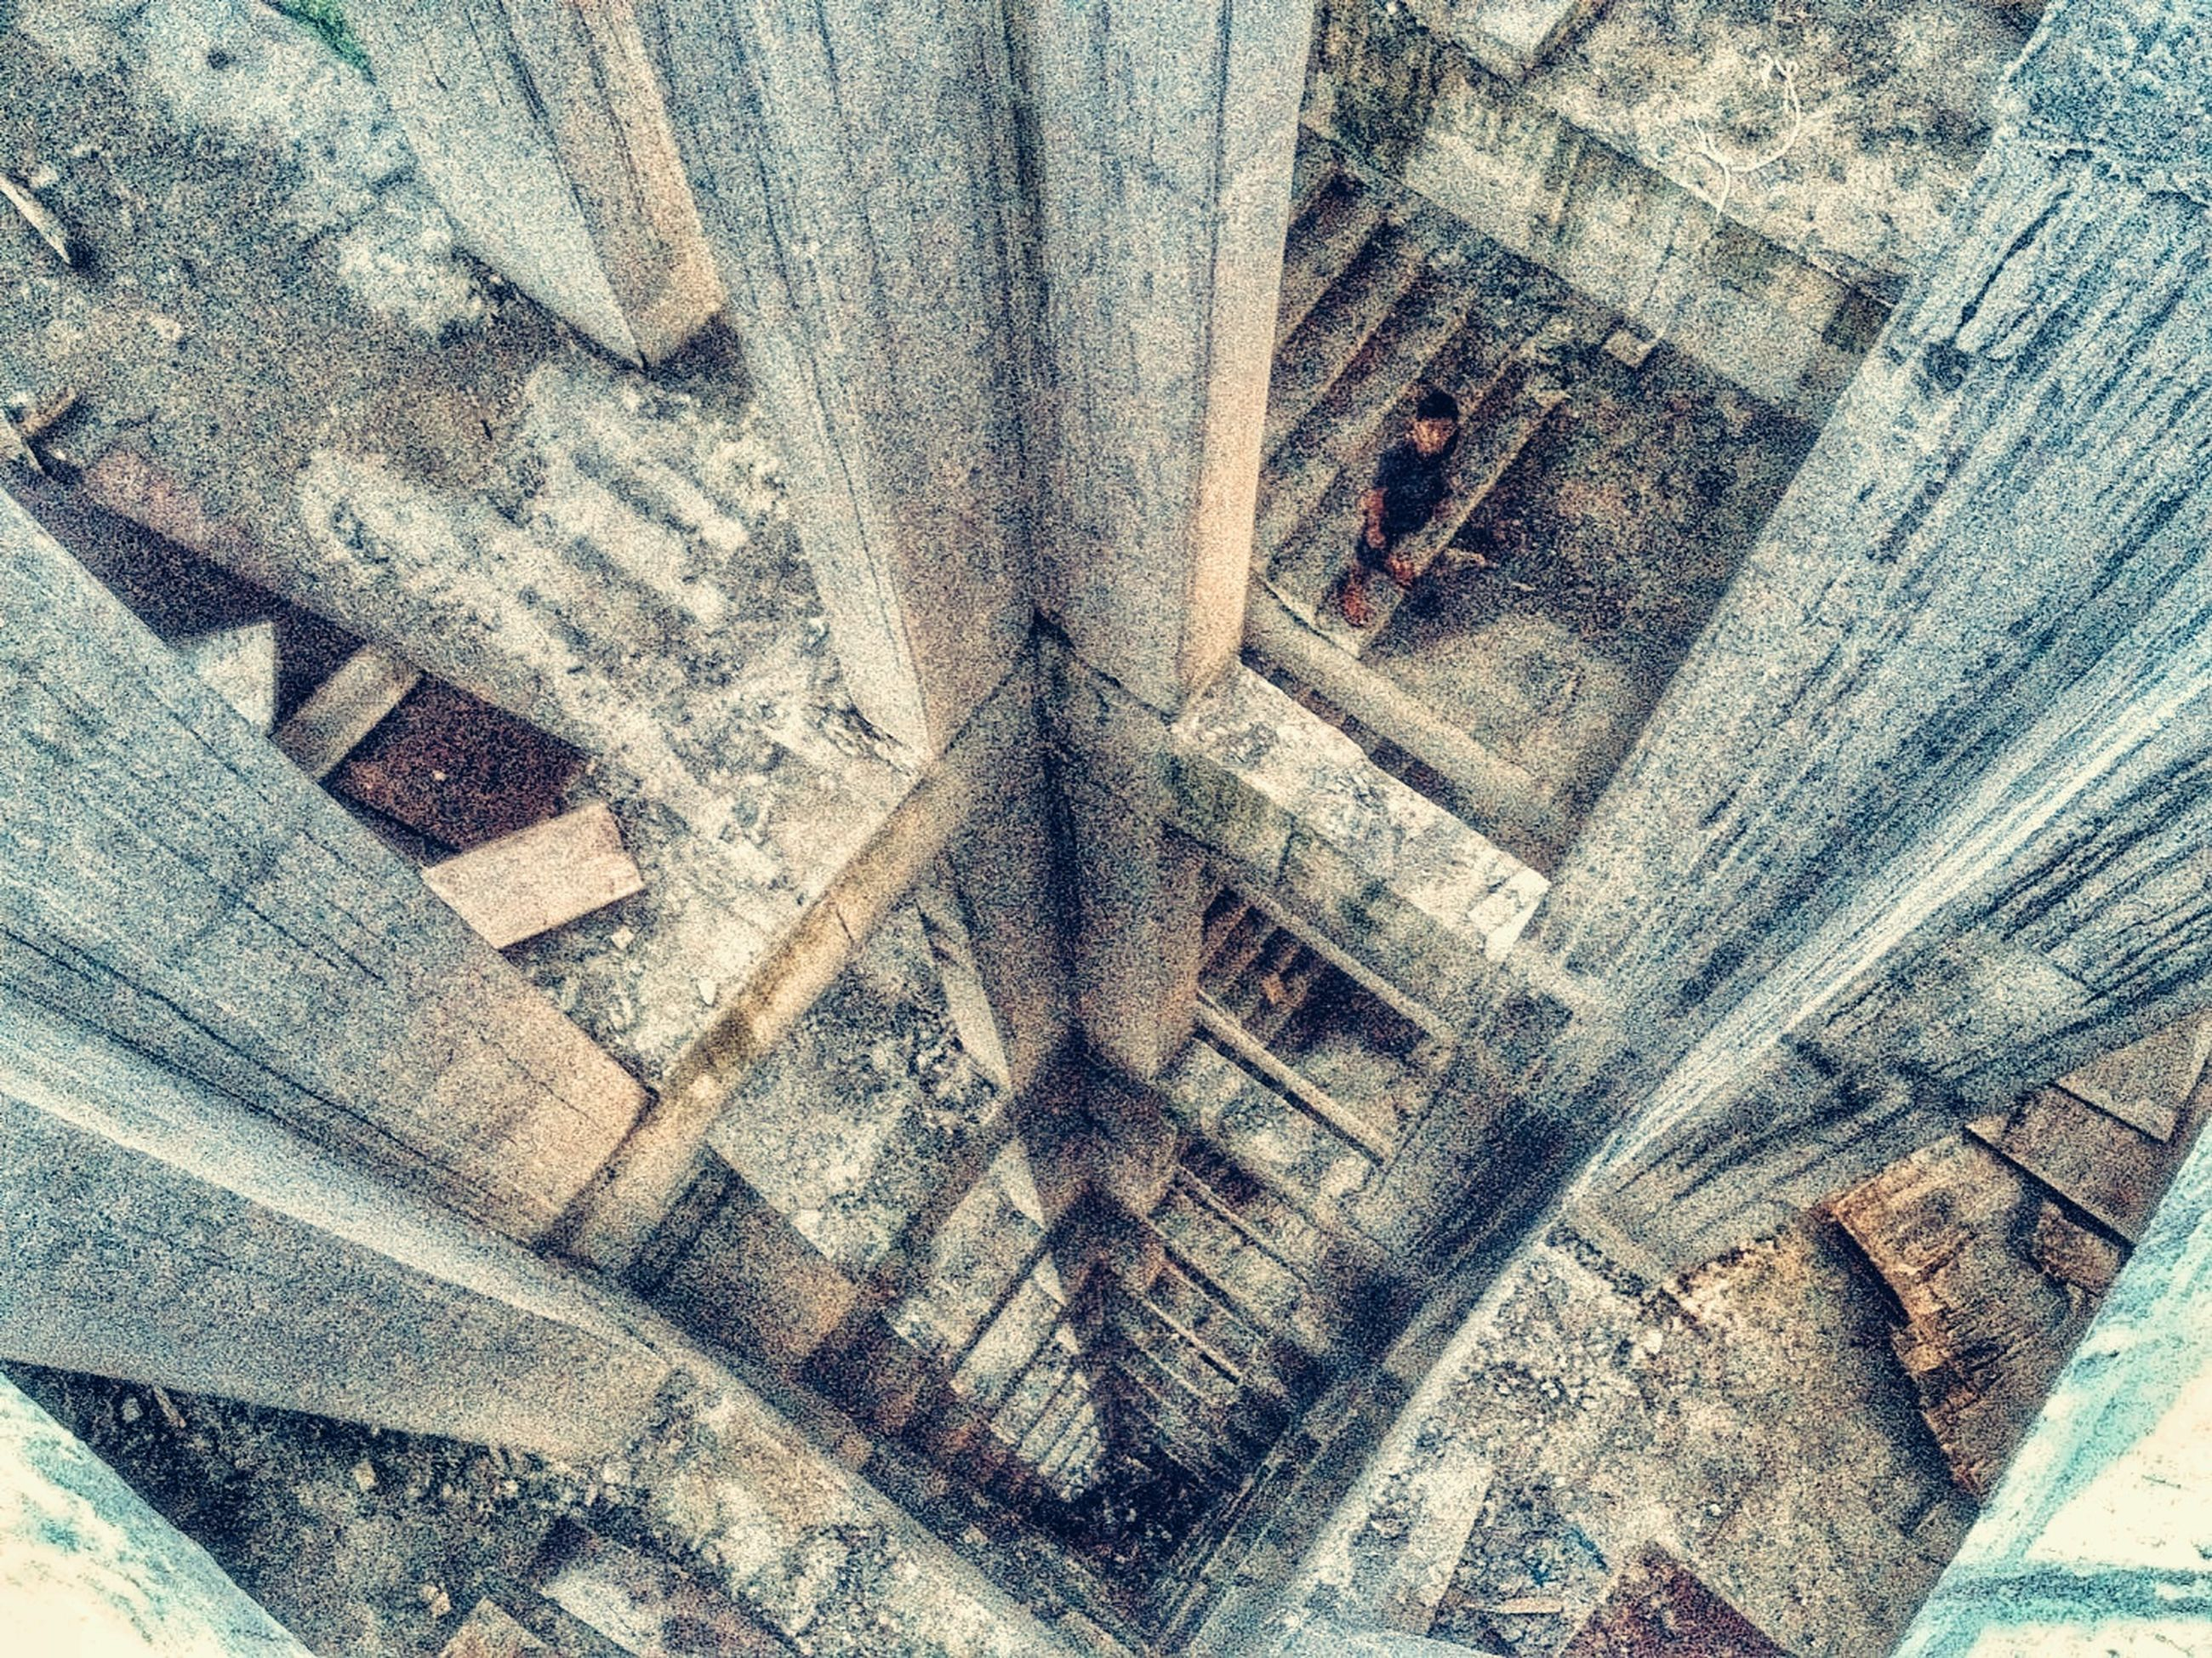 architecture, built structure, day, no people, old, history, building exterior, the past, building, high angle view, outdoors, weathered, abandoned, wall, close-up, window, pattern, wall - building feature, textured, architectural column, ruined